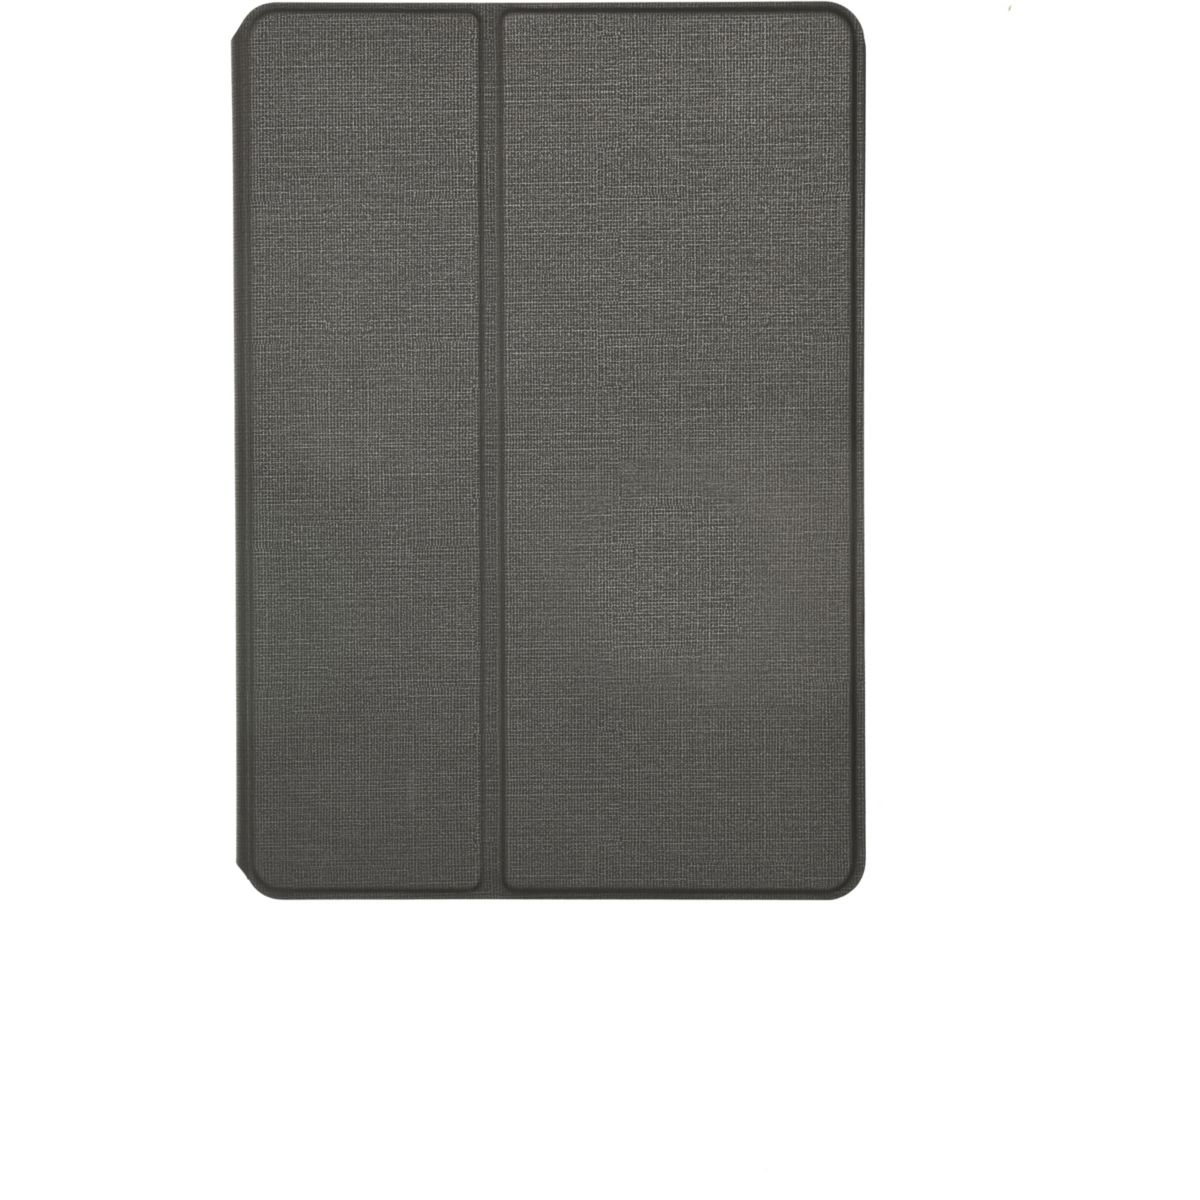 Etui ESSENTIELB iPad 9.7'' rotatif noir (photo)